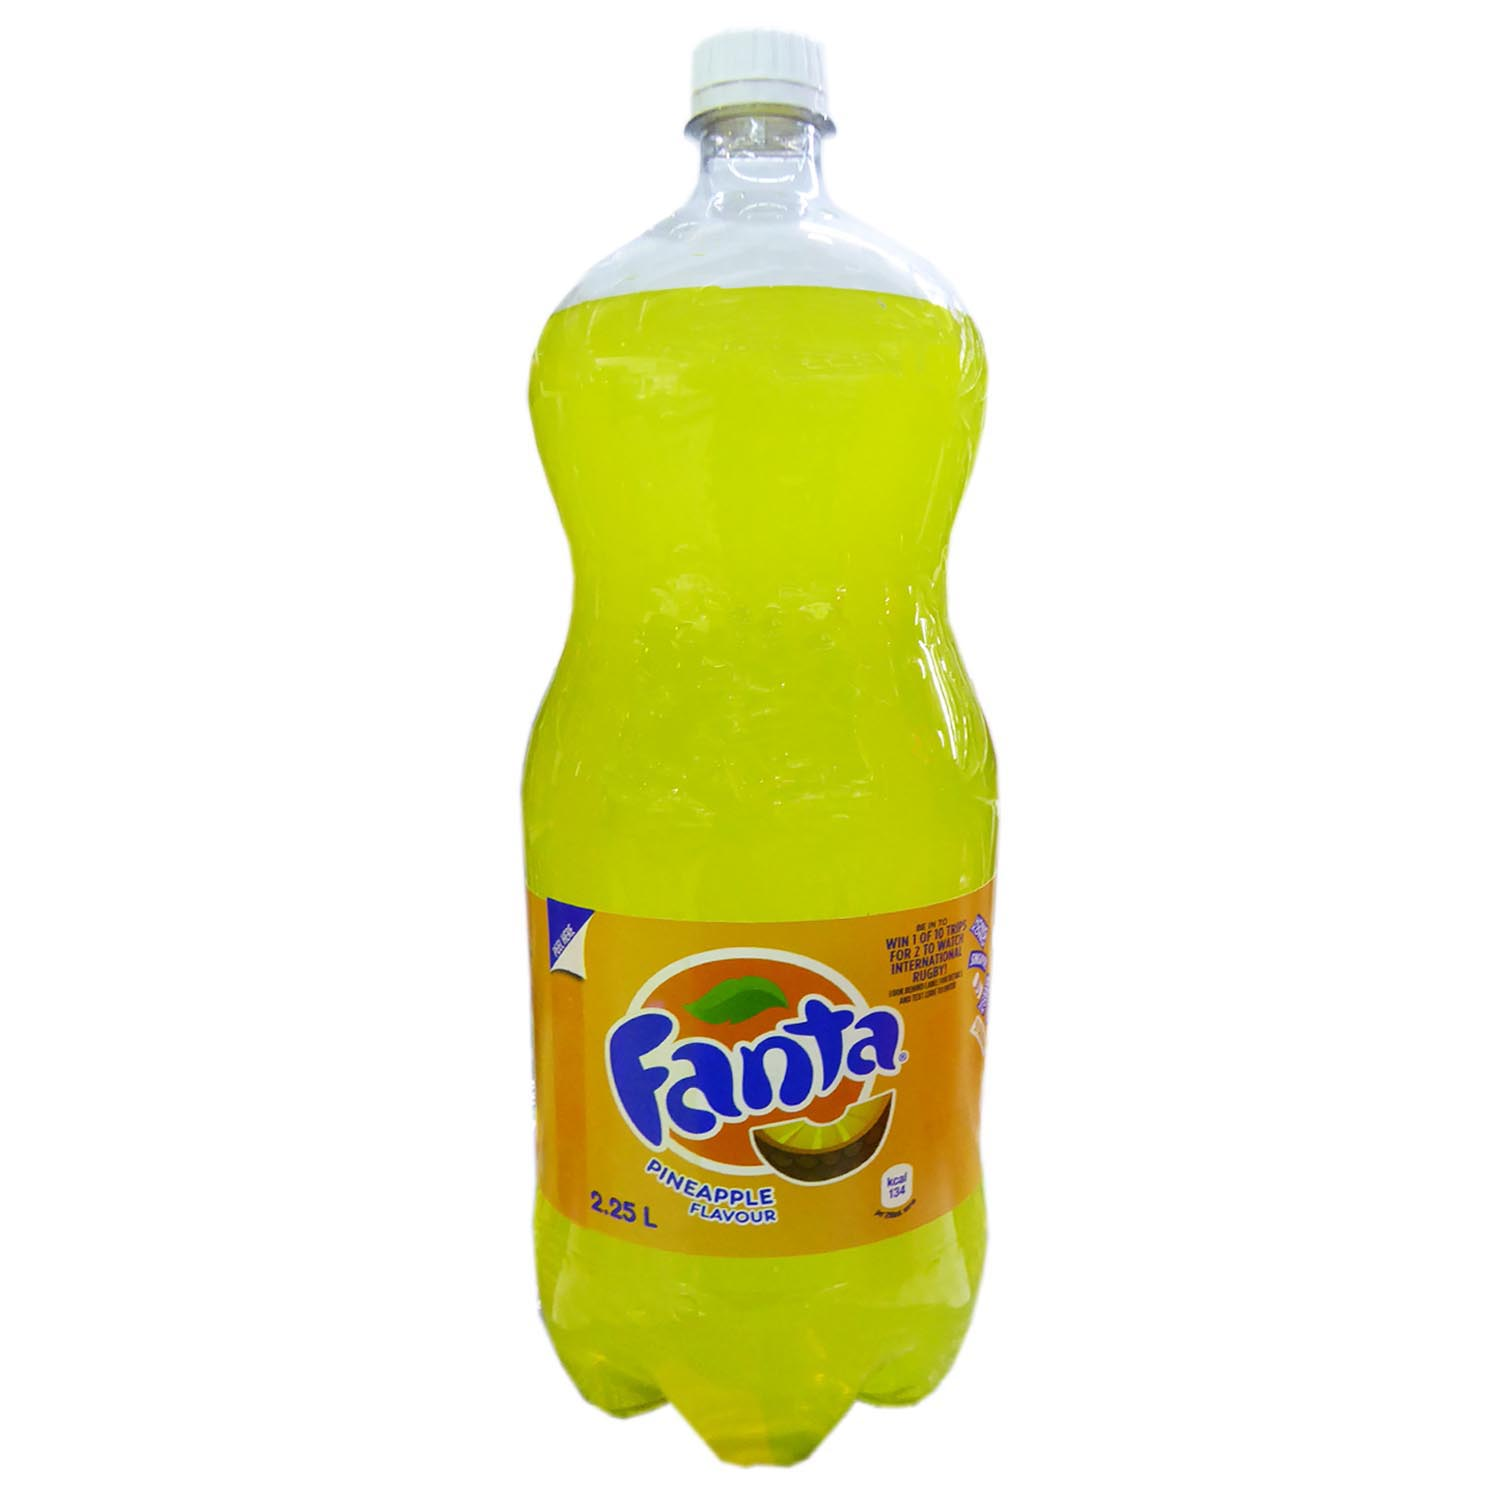 Fanta - Pineapple Flavour 2.255ltrs